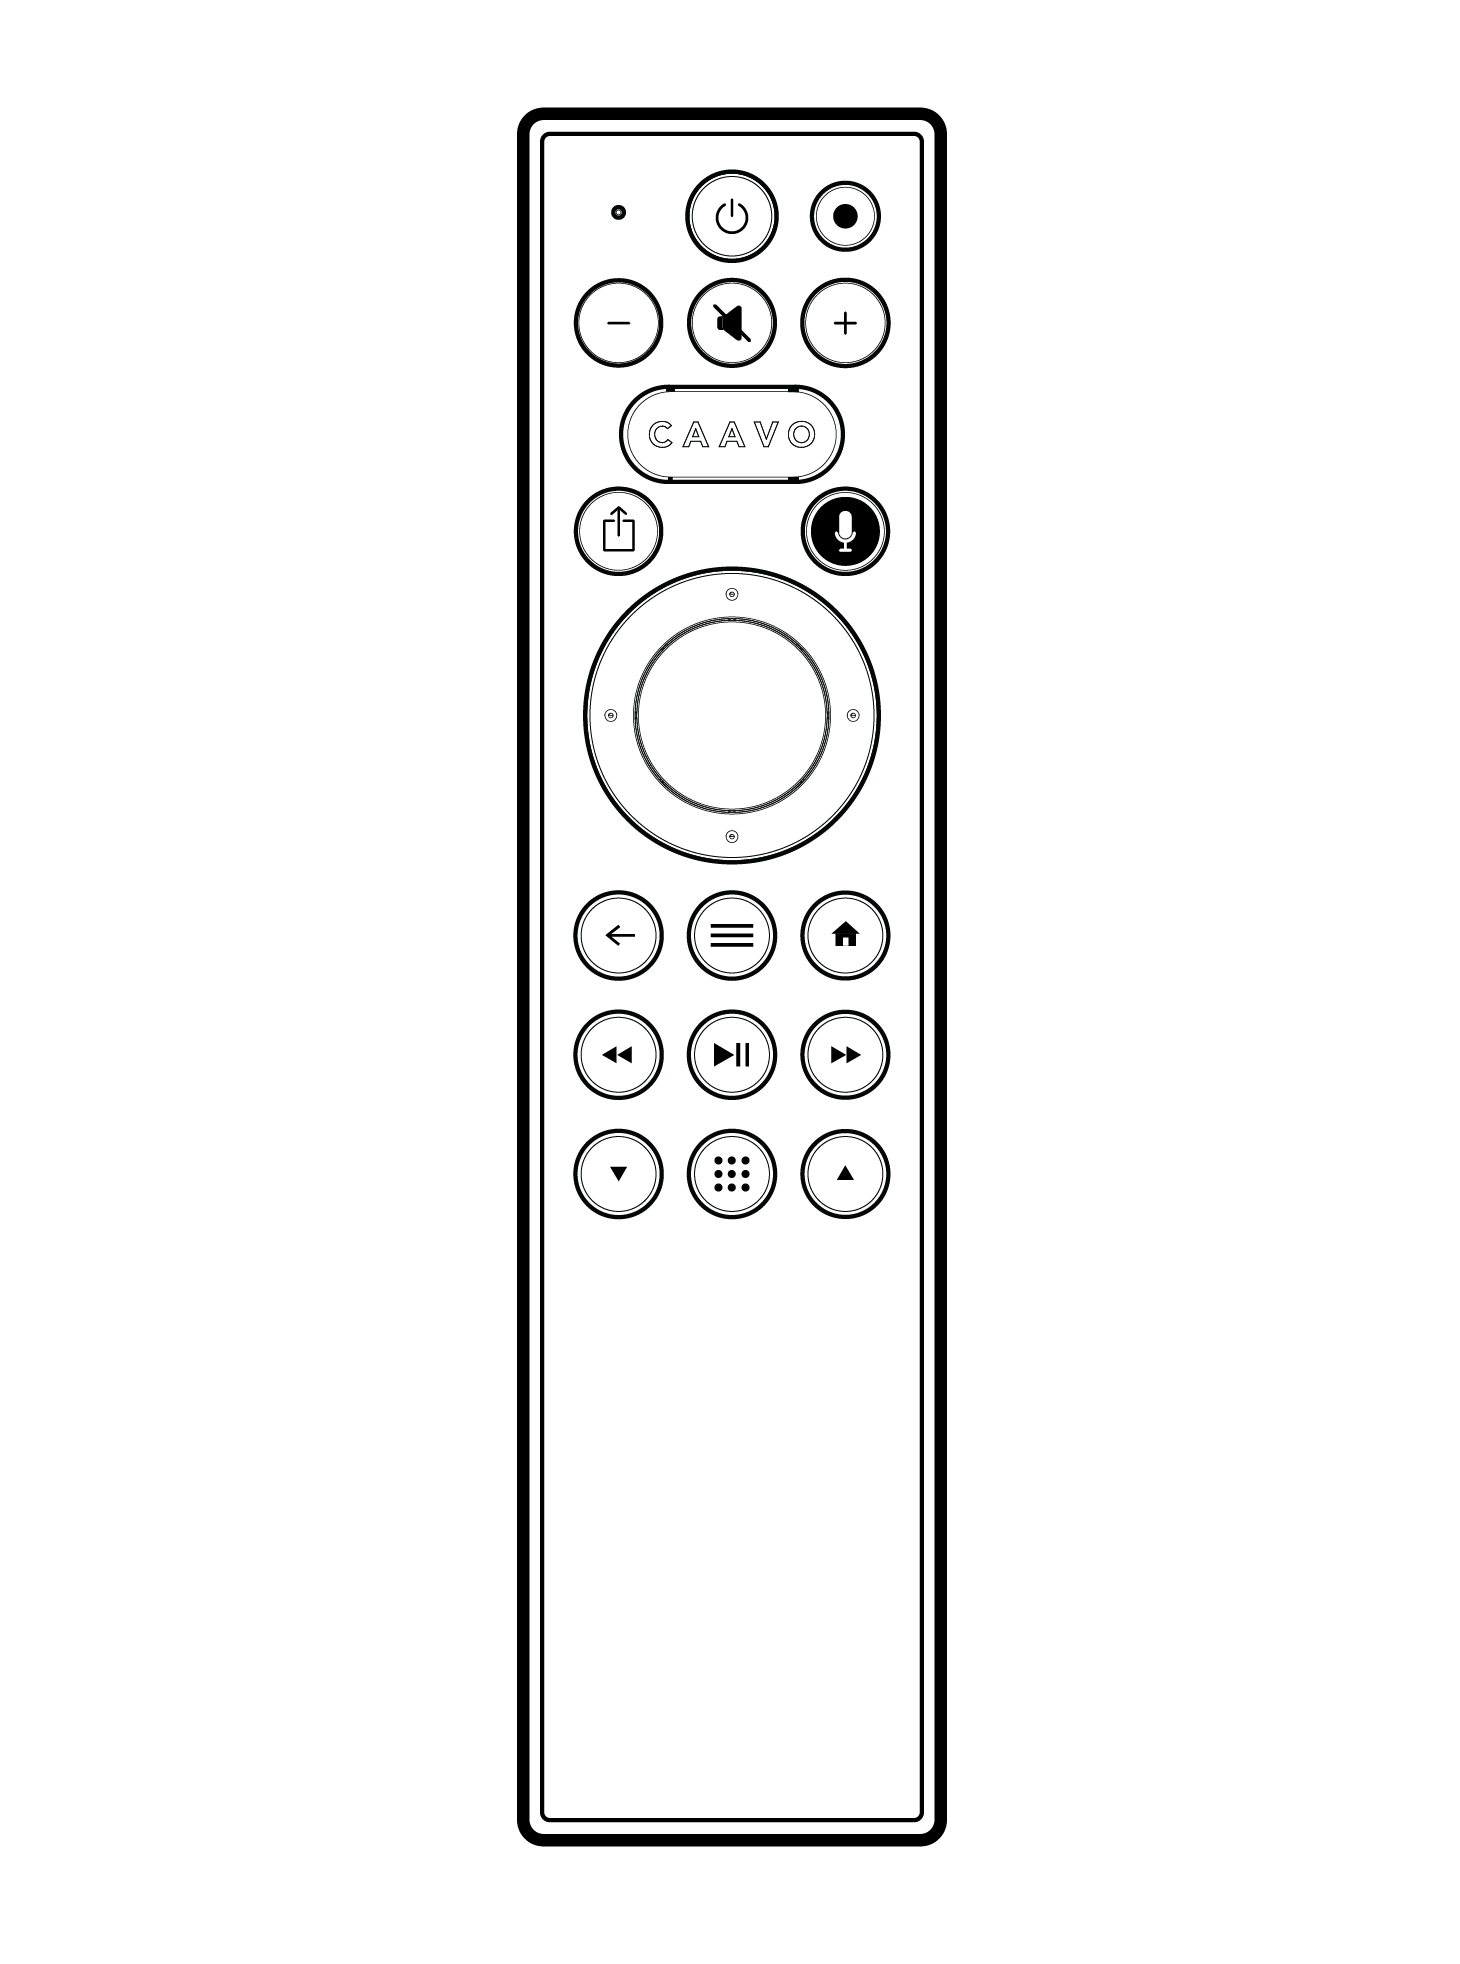 W4_RCU_Keypad_Art_Remote-01.png